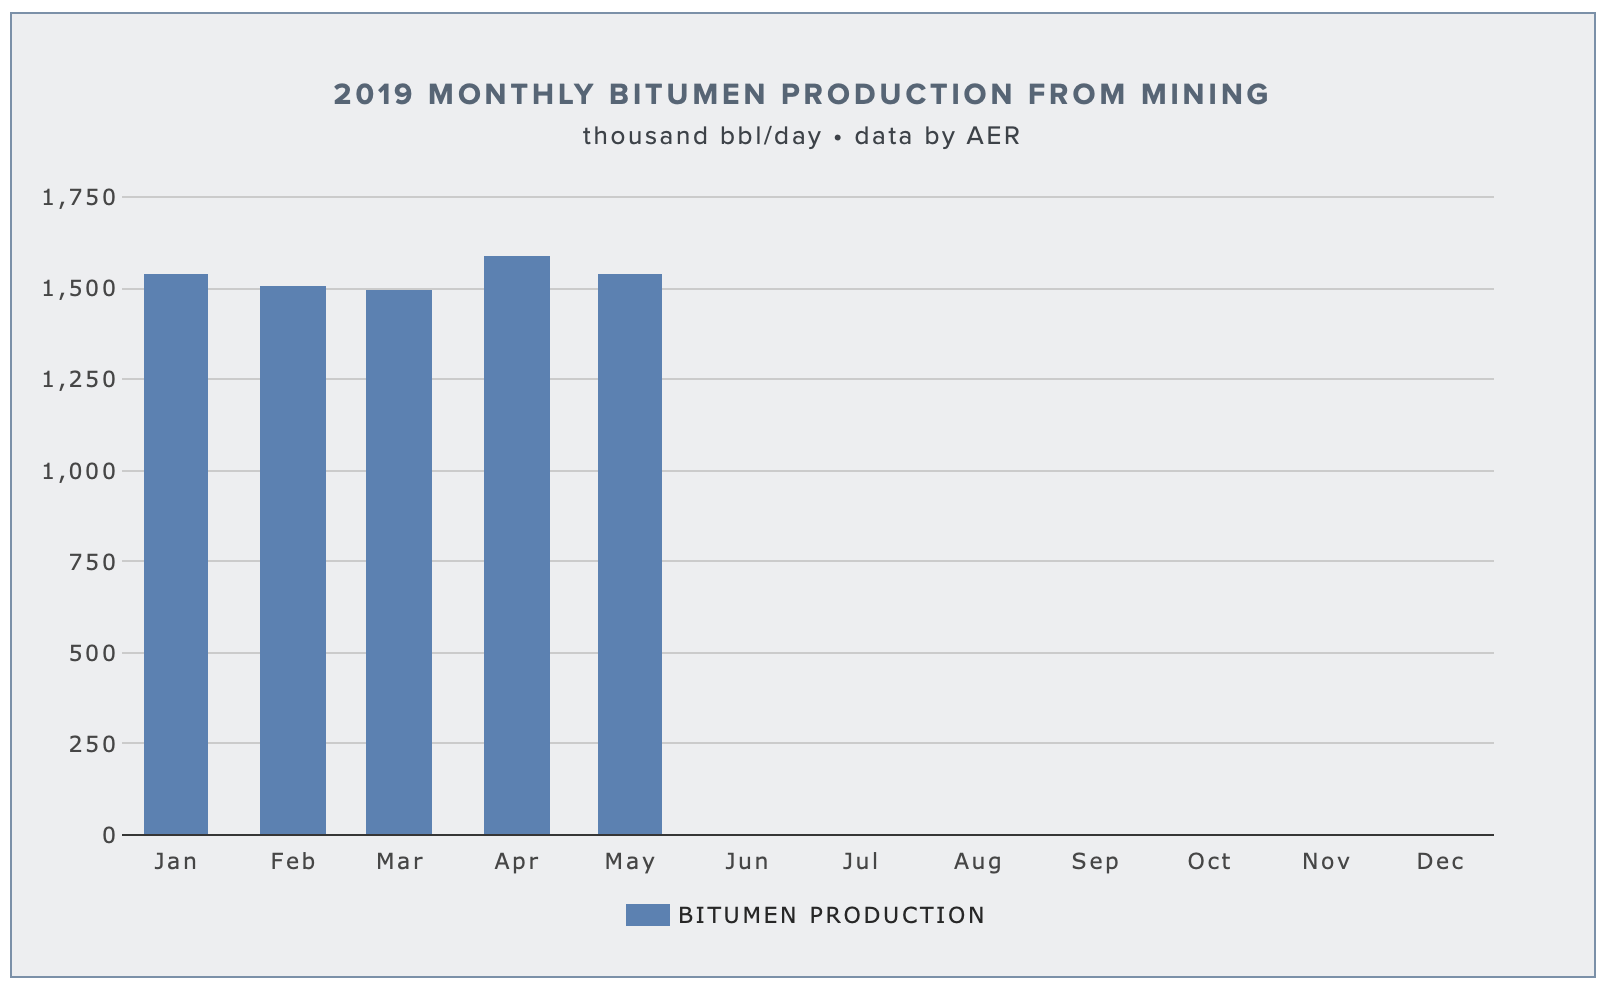 alberta-mined-bitumen-production.png